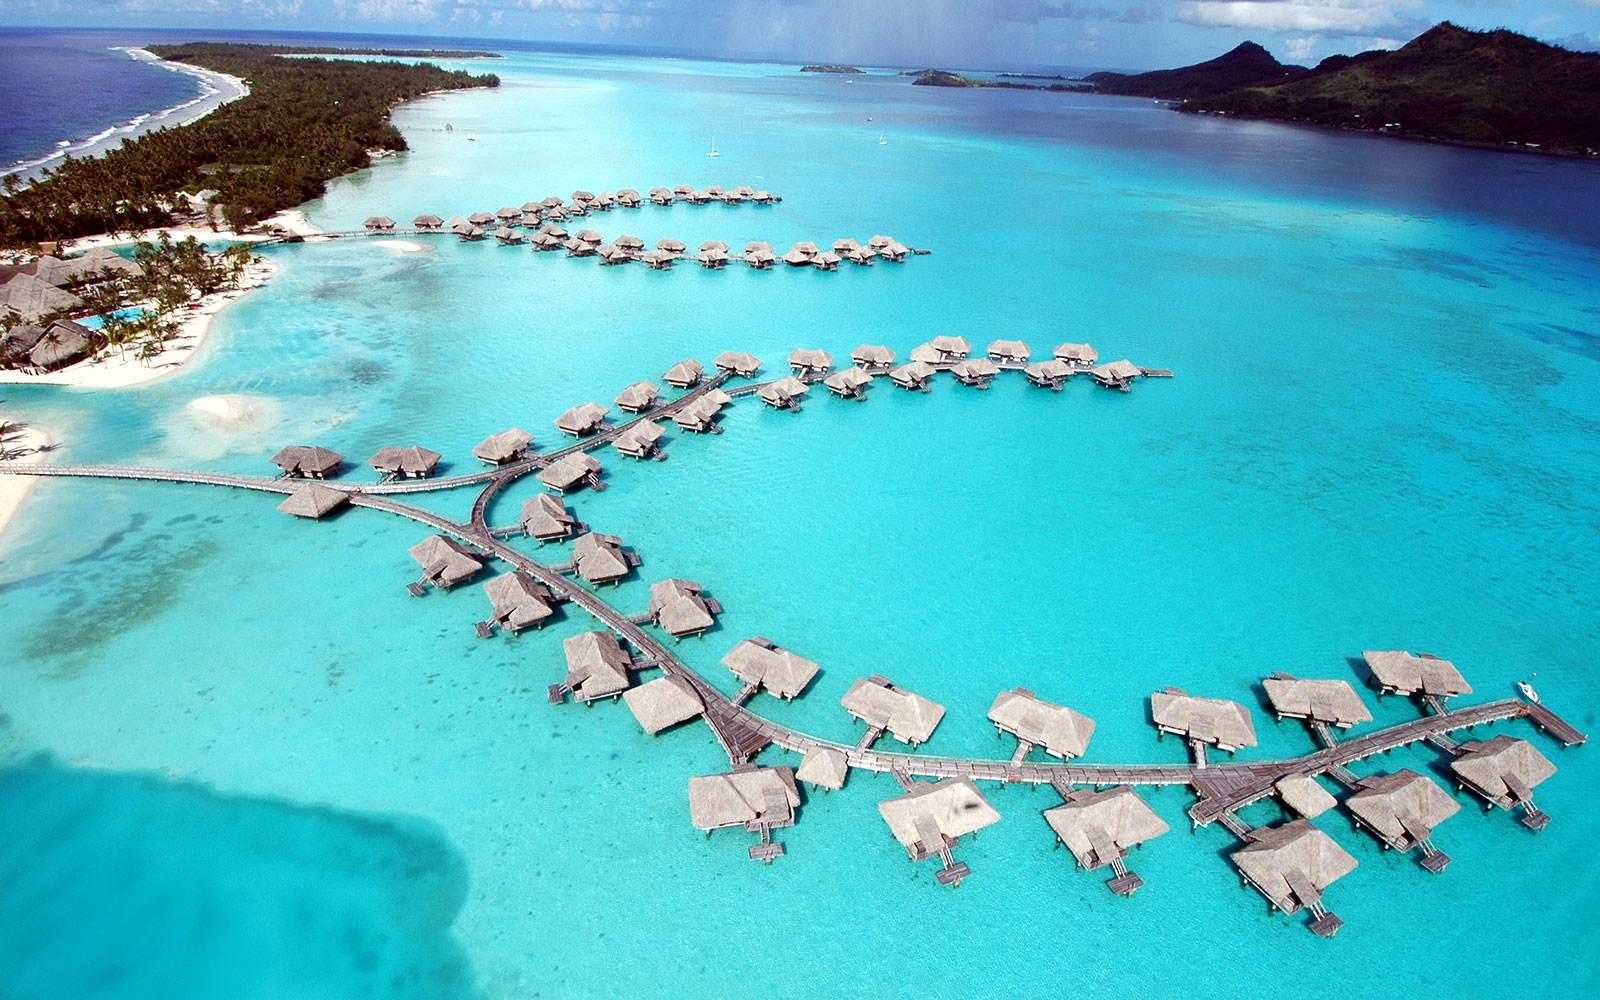 No. 12 (tie): Bora Bora Resort & Thalasso Spa, Bora Bora, French Polynesia